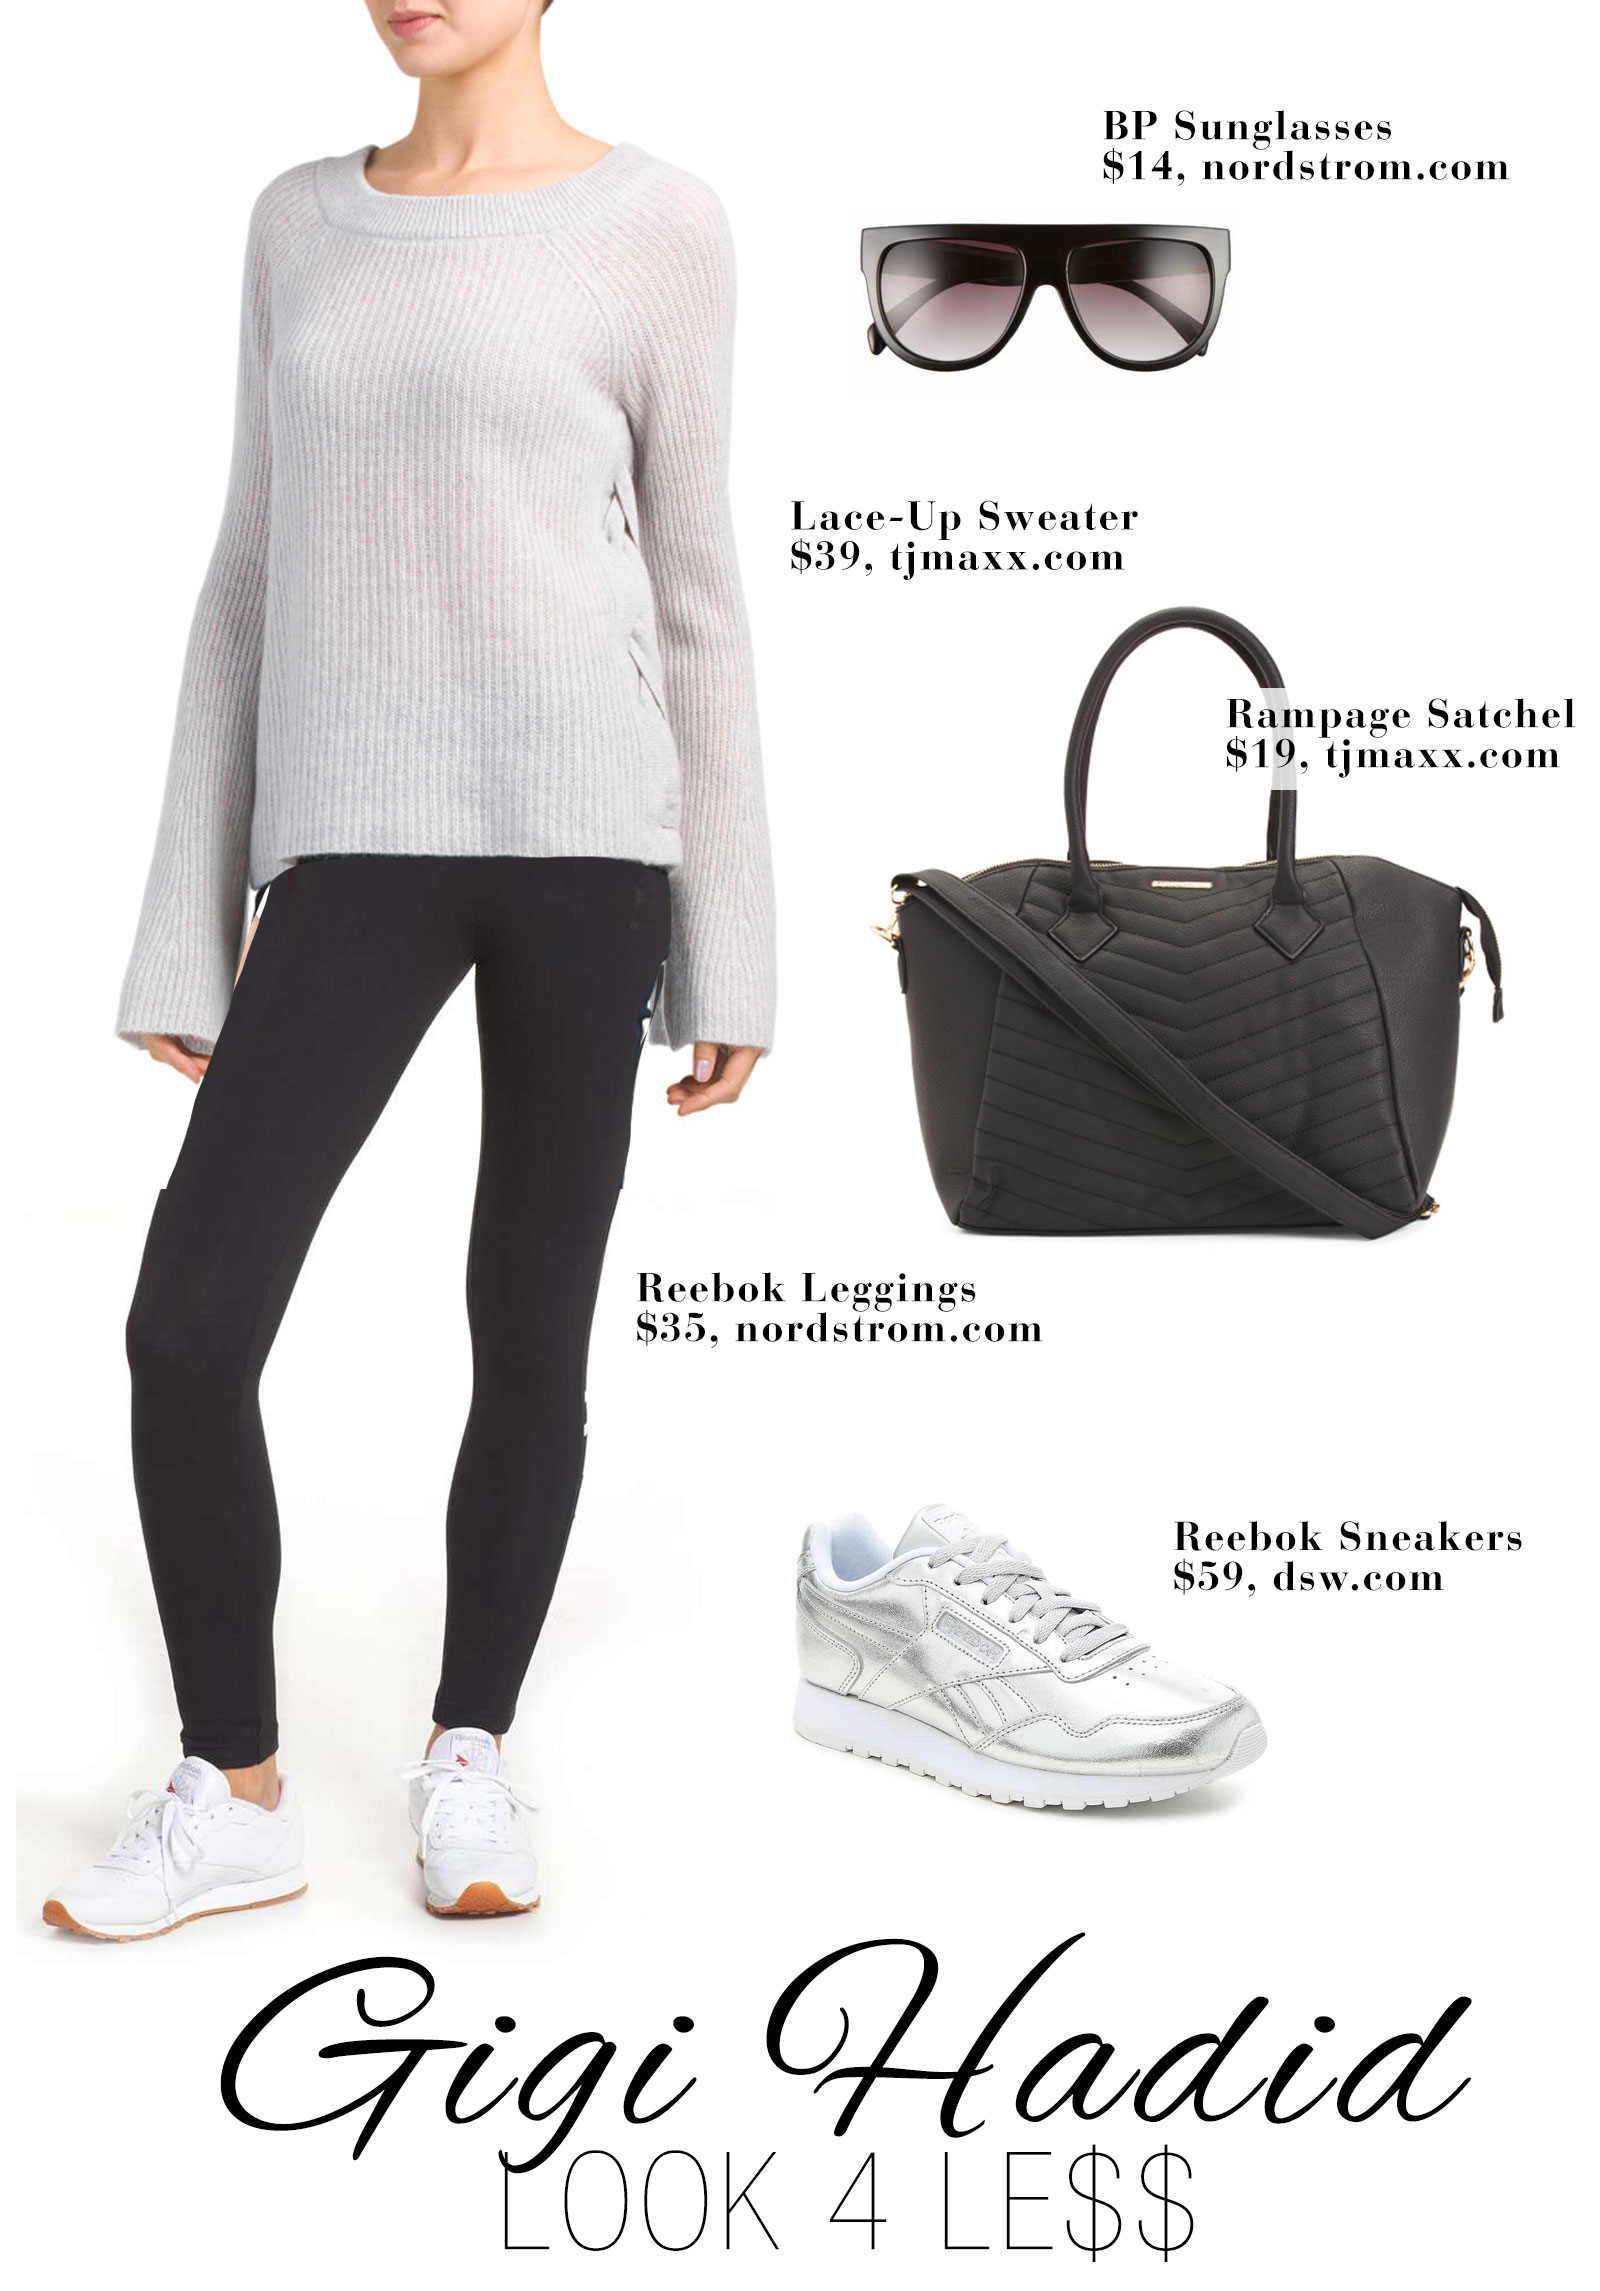 Gigi Hadid's turtleneck lace up sweater, Reebok leggings, silver sneakers and Saint Laurent bag look for less